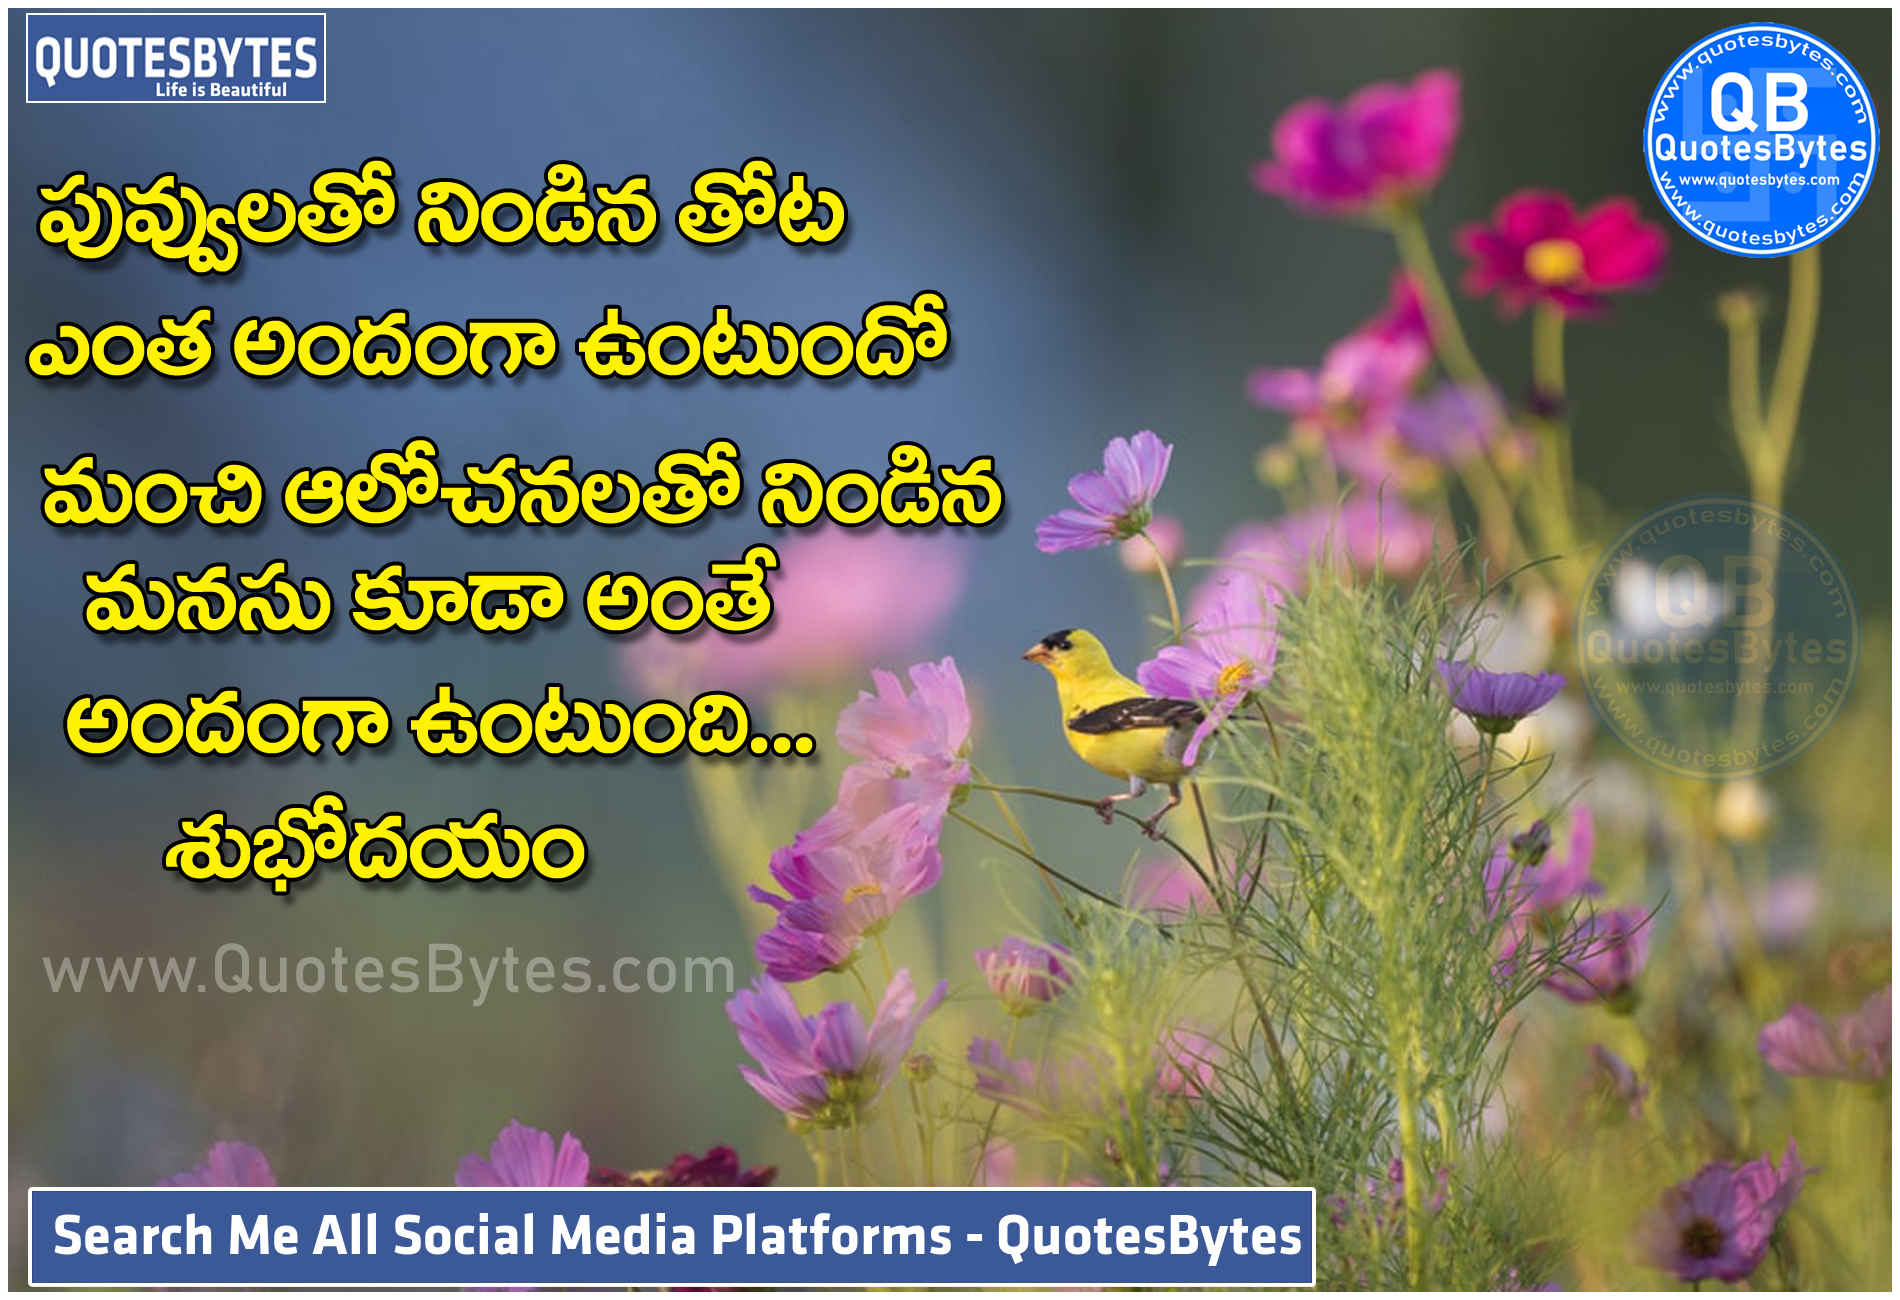 Telugu Good Morning Inspirational Quotes-Subhodayam Telugu Messages-Telugu Good Morning motivational quotes Good Morning Quotes in Telugu BEST GOOD MORNING QUOTES IN TELUGU – POPULAR TELUGU QUOTES Here are good morning quotes in Telugu text, Telugu good morning kavithalu, good morning quotes to share with friends,Best Telugu Good Morning whatsappdp, good morning quotes in Telugu for lovers, good morning in the Telugu language, best good morning whatsappdp,Inspirational Good Morning Quotes in Telugu, download good morning quotes Telugu. good morning quotes in telugu, good morning quotes in Telugu, Telugu good morning images, and also good morning images in Telugu,status quotes in telugu greetings and wishes,status Quotes,Telugu good morning quotes, good morning wishes in Telugu, good morning messages in Telugu ,Telugu good morning SMS and status ,good morning quotes, wishes in telugu,Best Telugu Quotes and Good Morning Quotes,TELUGU QUOTES GOOD MORNING QUOTES, morning wishes, great morning wishes.good morning quotes,inspirational good morning quotes in telugu, wishes in telugu, Best good morning pics, quotes,Telugu Good Morning Quotes for Facebook whatsappdp,status,Facebook good Morning Quotes with Images, images and sayings, NEW HD wallpapers best images, Good morning Telugu NEW cute and awesome images and wallpapers in HD Good morning Telugu, Telugu WhatsApp, Best And Top Good Morning In Telugu, Images, Quotes, Messages, Wishes. If you Are searching for good morning quotes in Telugu, Telugu good morning images, and also good morning images in Telugu, Telugu good morning quotes, good morning wishes in Telugu, good morning messages in Telugu and Telugu good morning sms and status,Good Morning Quotes in Telugu,Telugu Good Morning Quotes for Whatsapp Status, Telugu Good Morning Messages for whatsappdp,status,Telugu Good Morning Quotes for WhatsappStatus,Top Good Morning Quotes in Telugu,TELUGU GOOD MORNING QUOTES FOR WHATSAPP STATUS,Telugu Good Morning Quotes for Whats